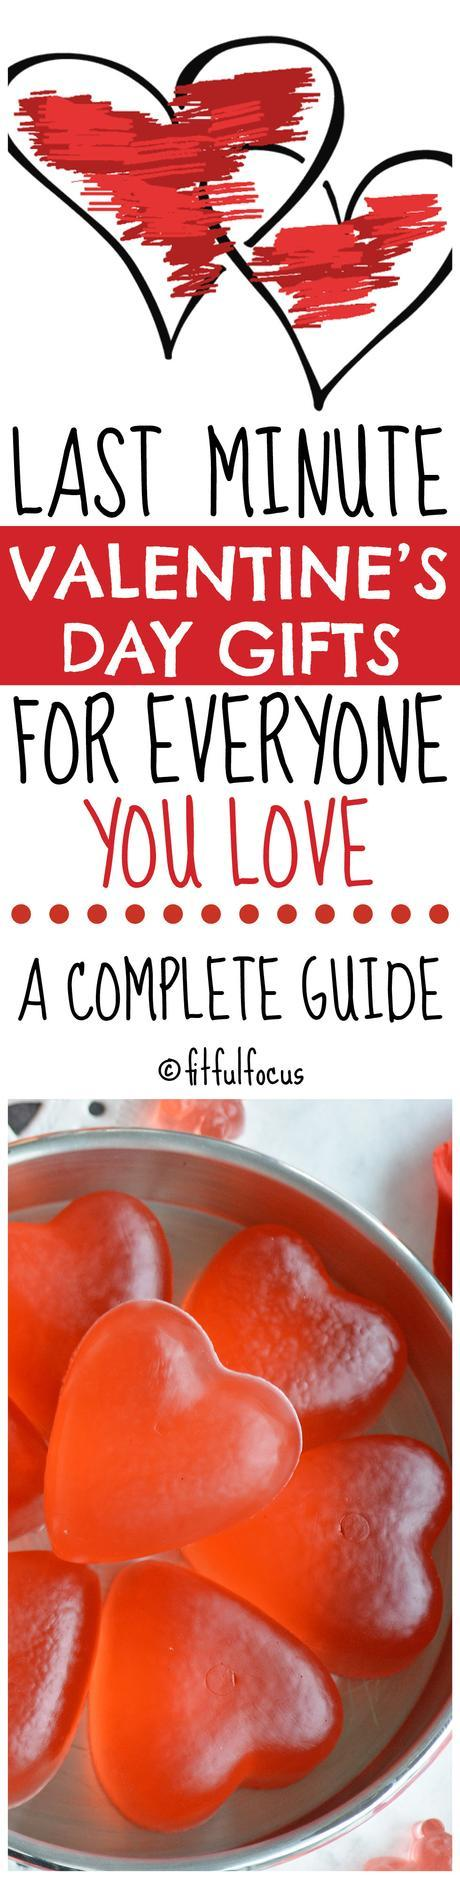 Last Minute Valentine's Day Gifts For Everyone You Love